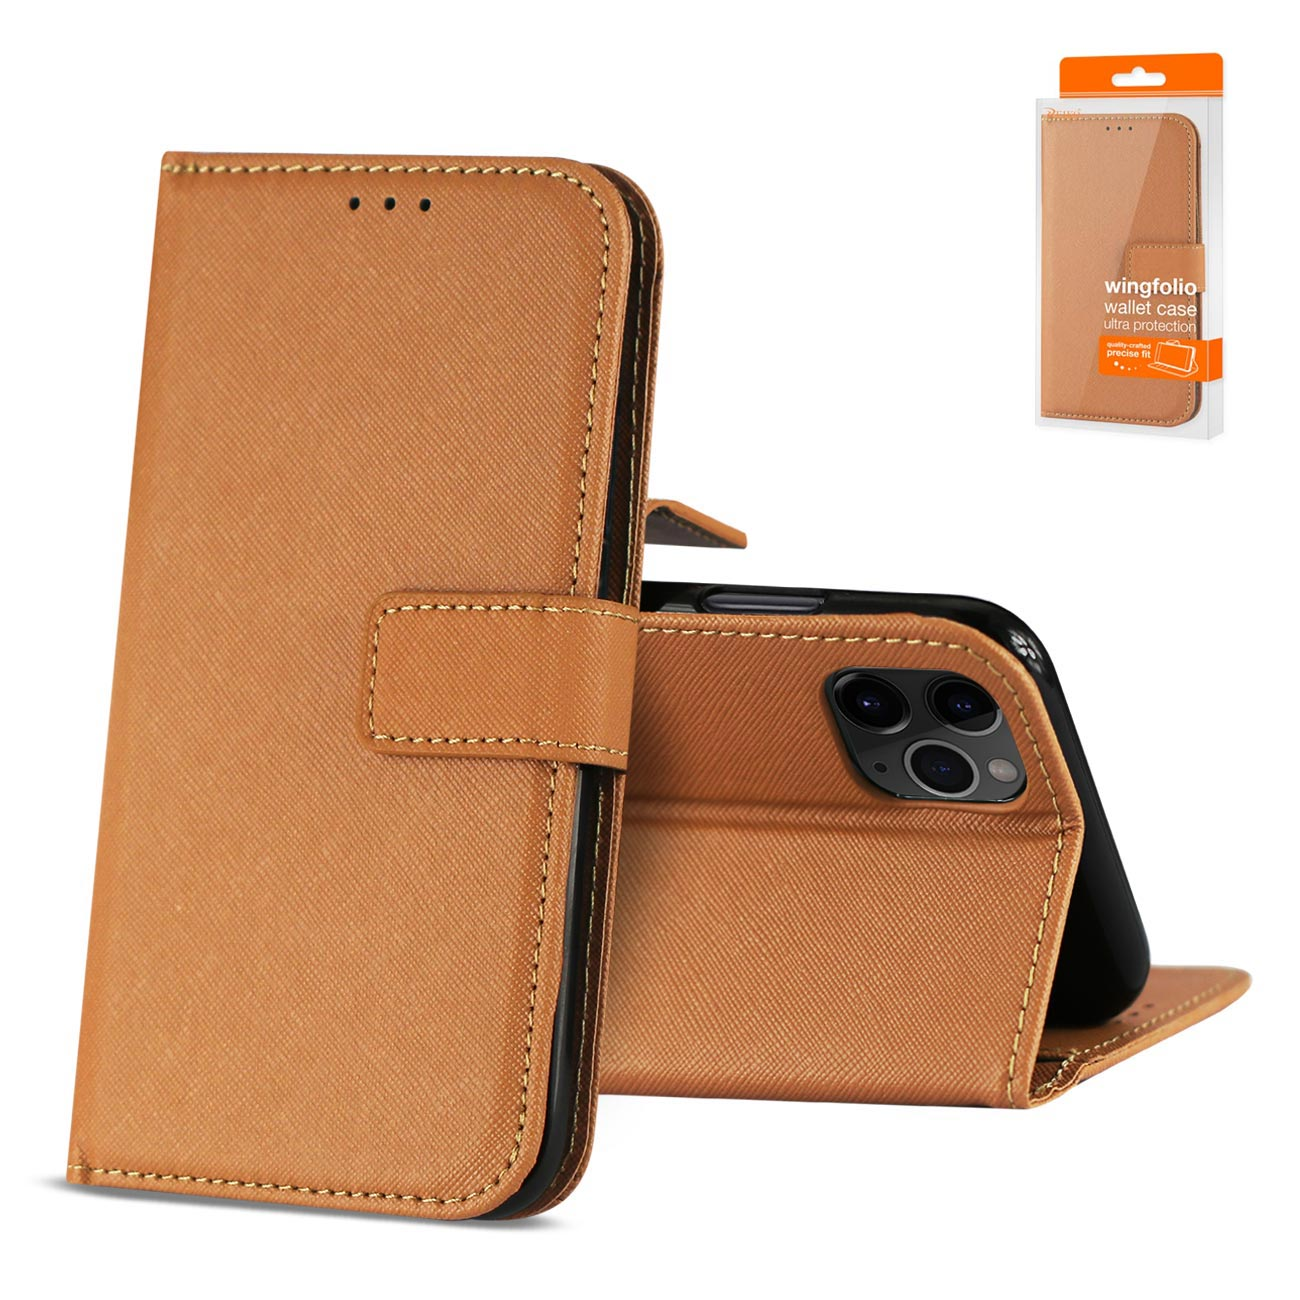 APPLE IPHONE 11 PRO 3-In-1 Wallet Case In BROWN